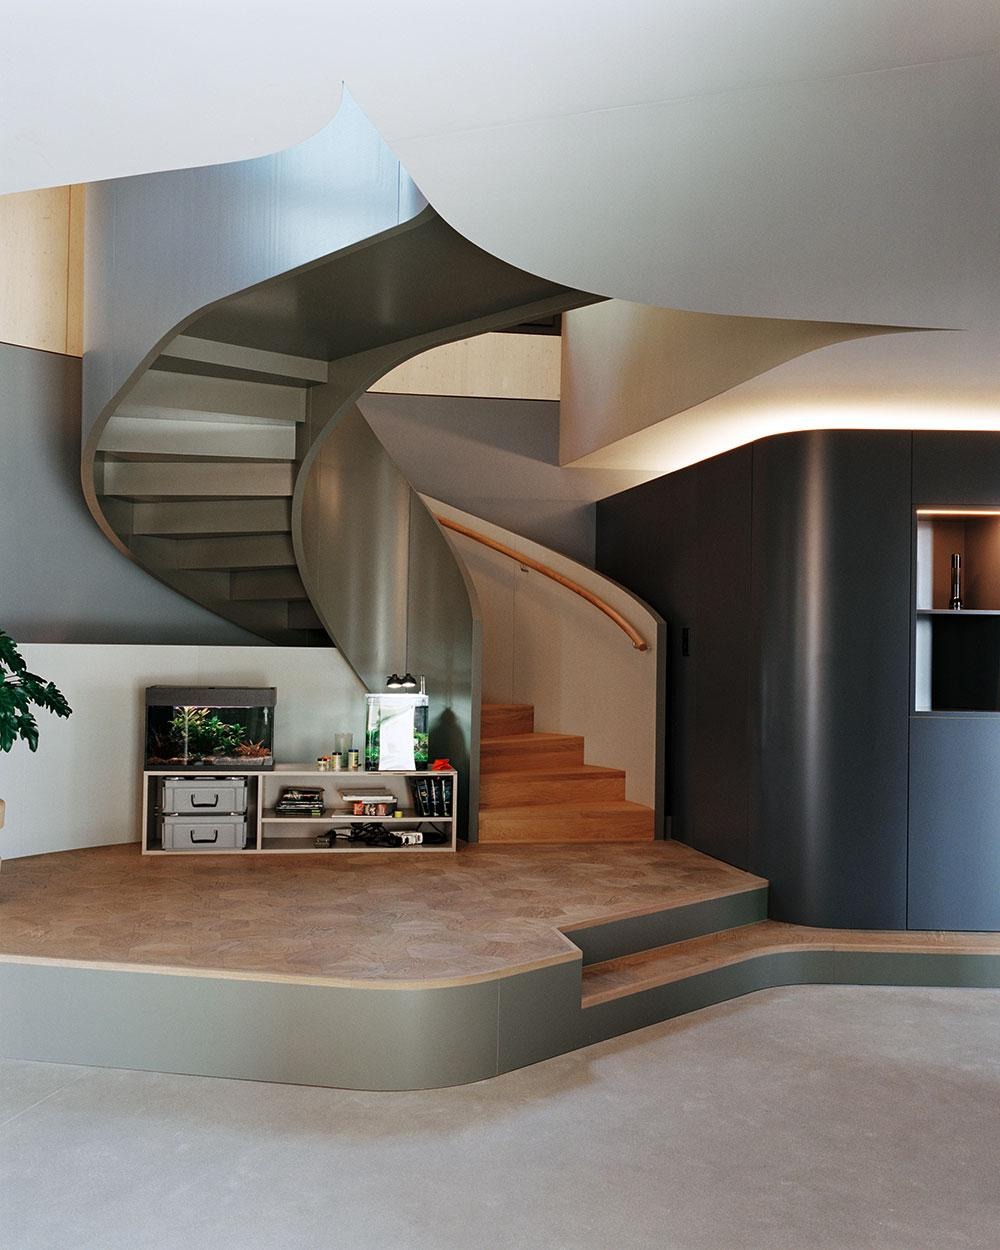 Spiral staircase by Baier Bischofberger Architects